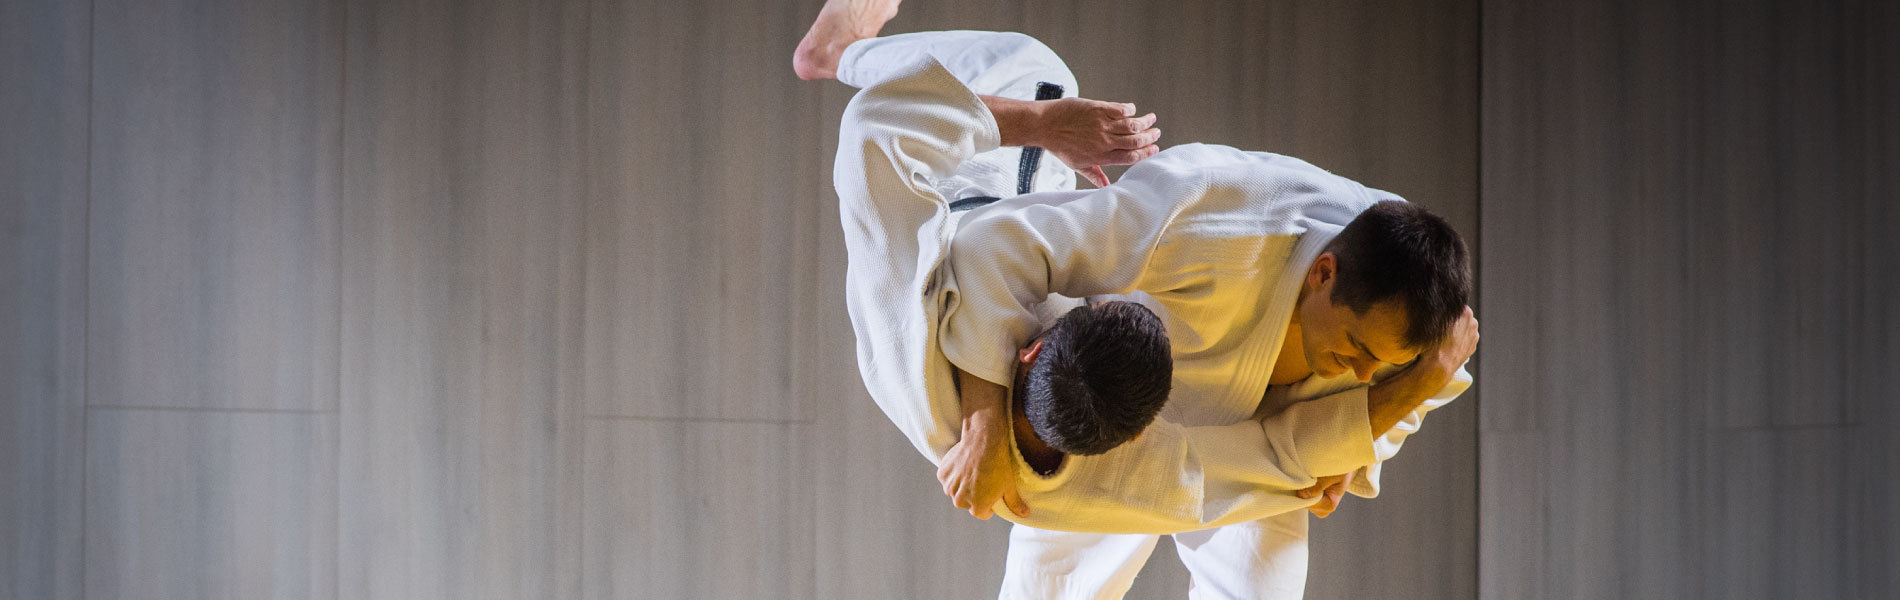 How-to-Hire-And-Keep_the_Best_Martial_Arts_Instructors_1900x600.jpg